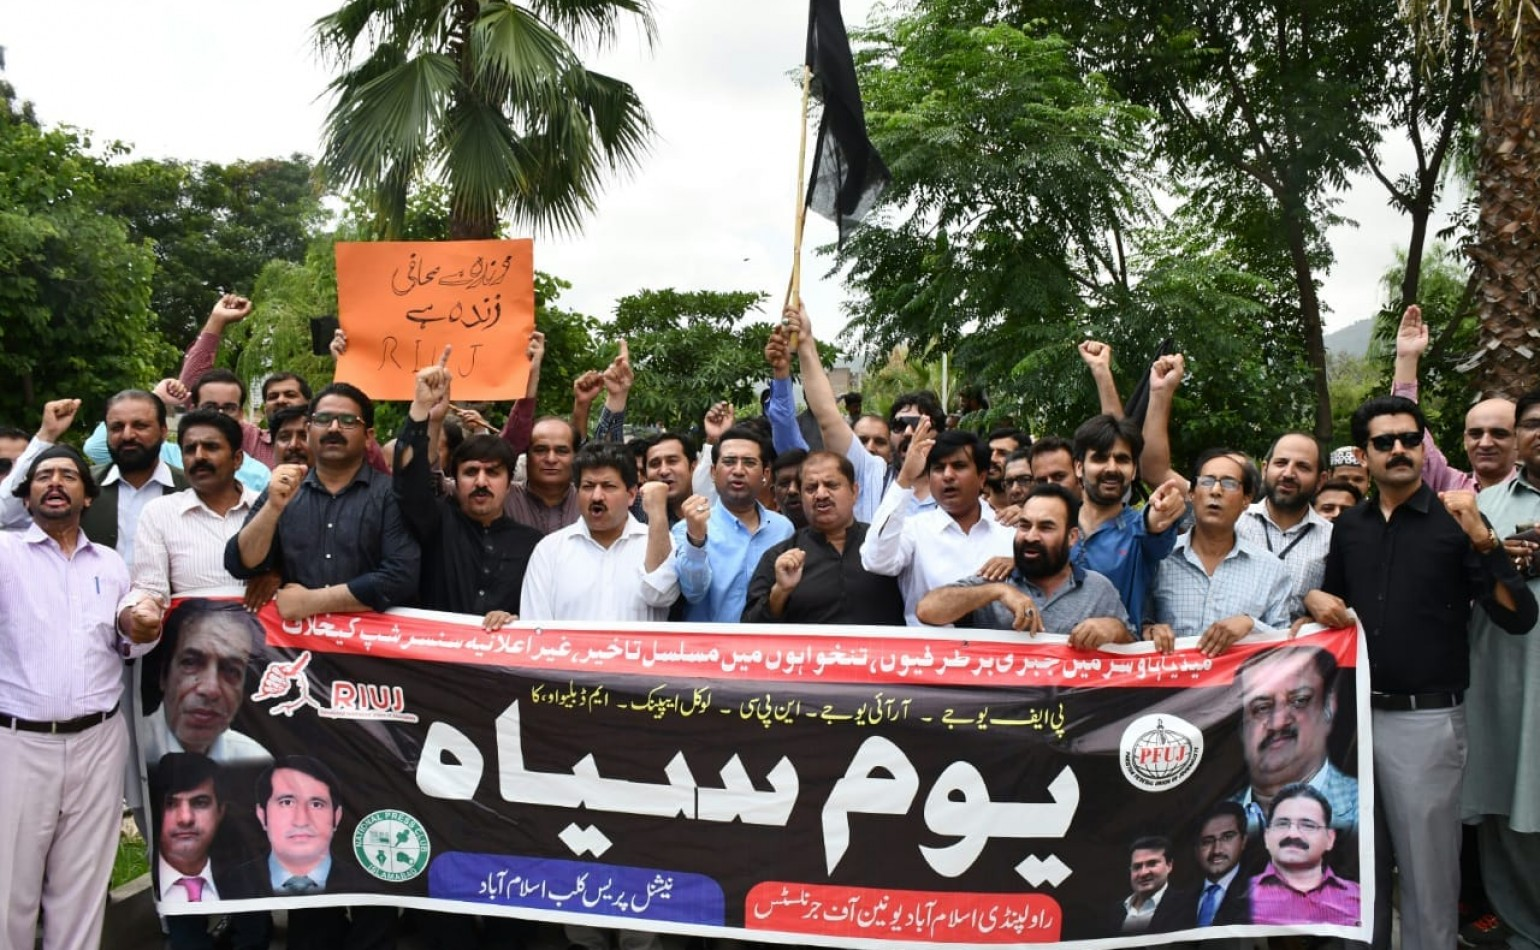 PFUJ leads nationwide protest against media censorship, layoffs